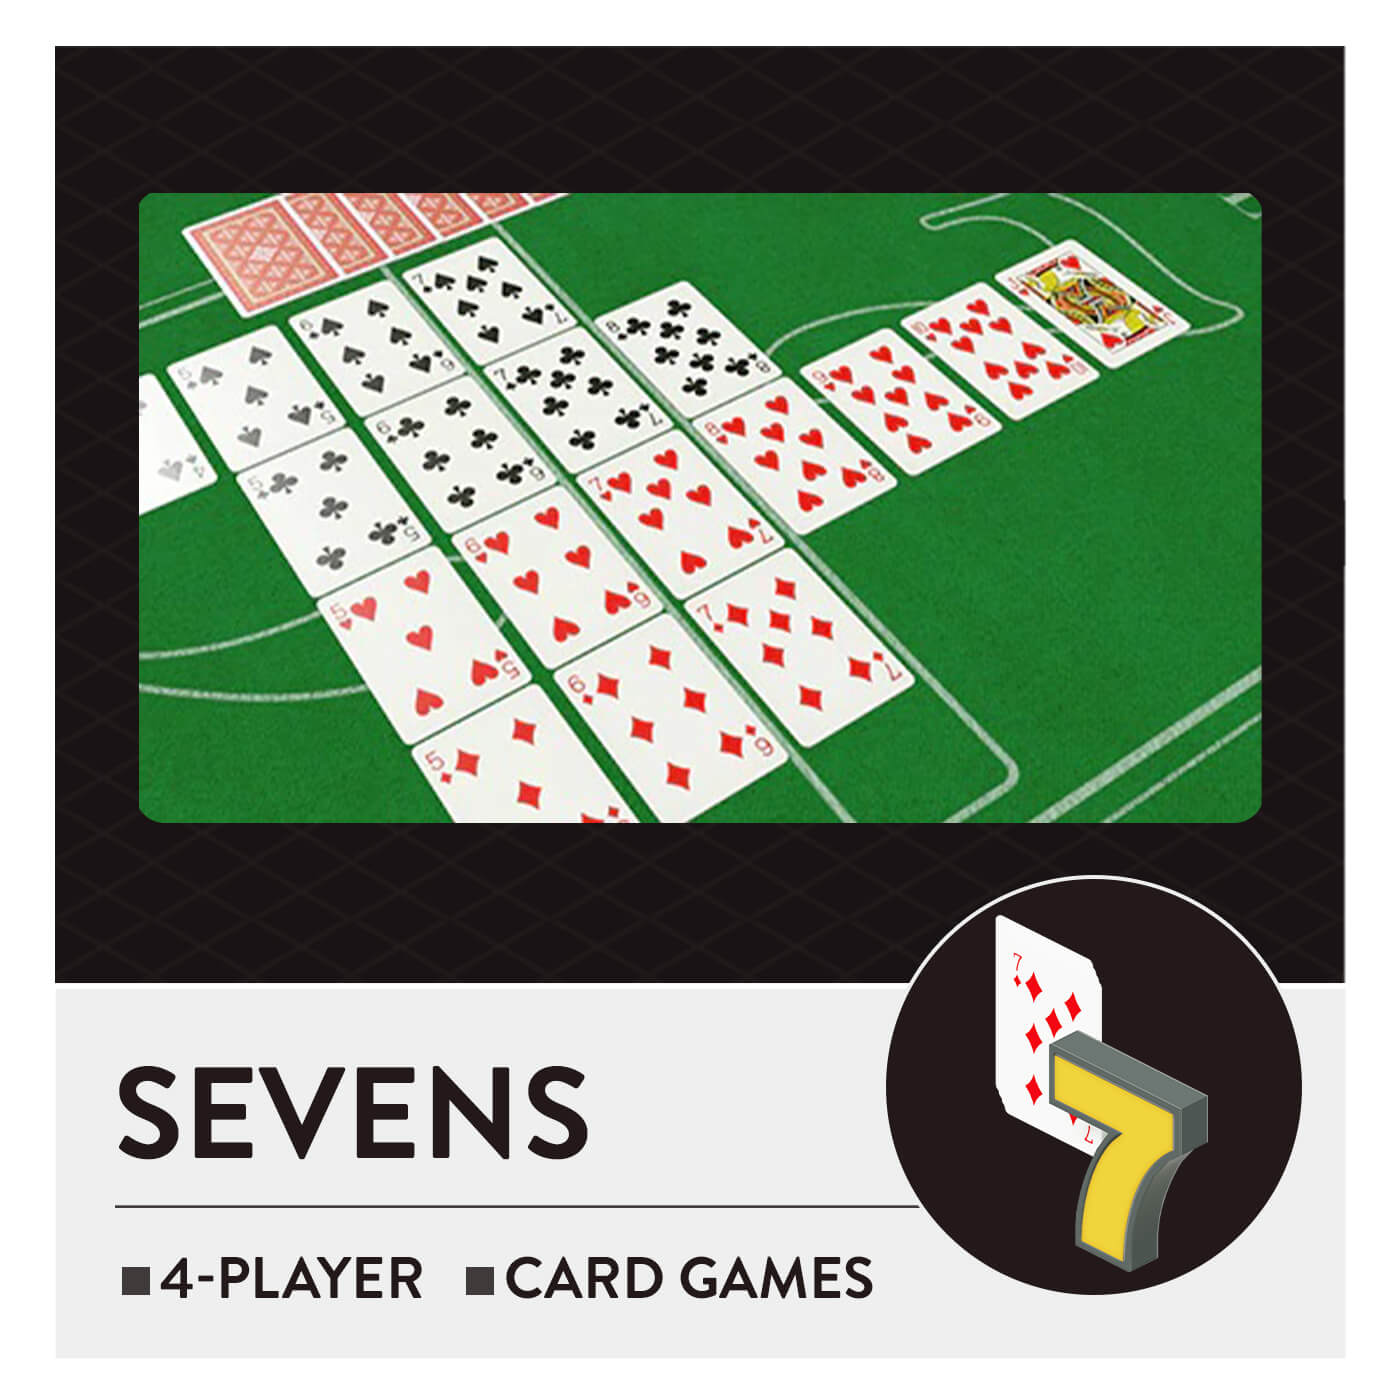 51 Worldwide Games - Sevens